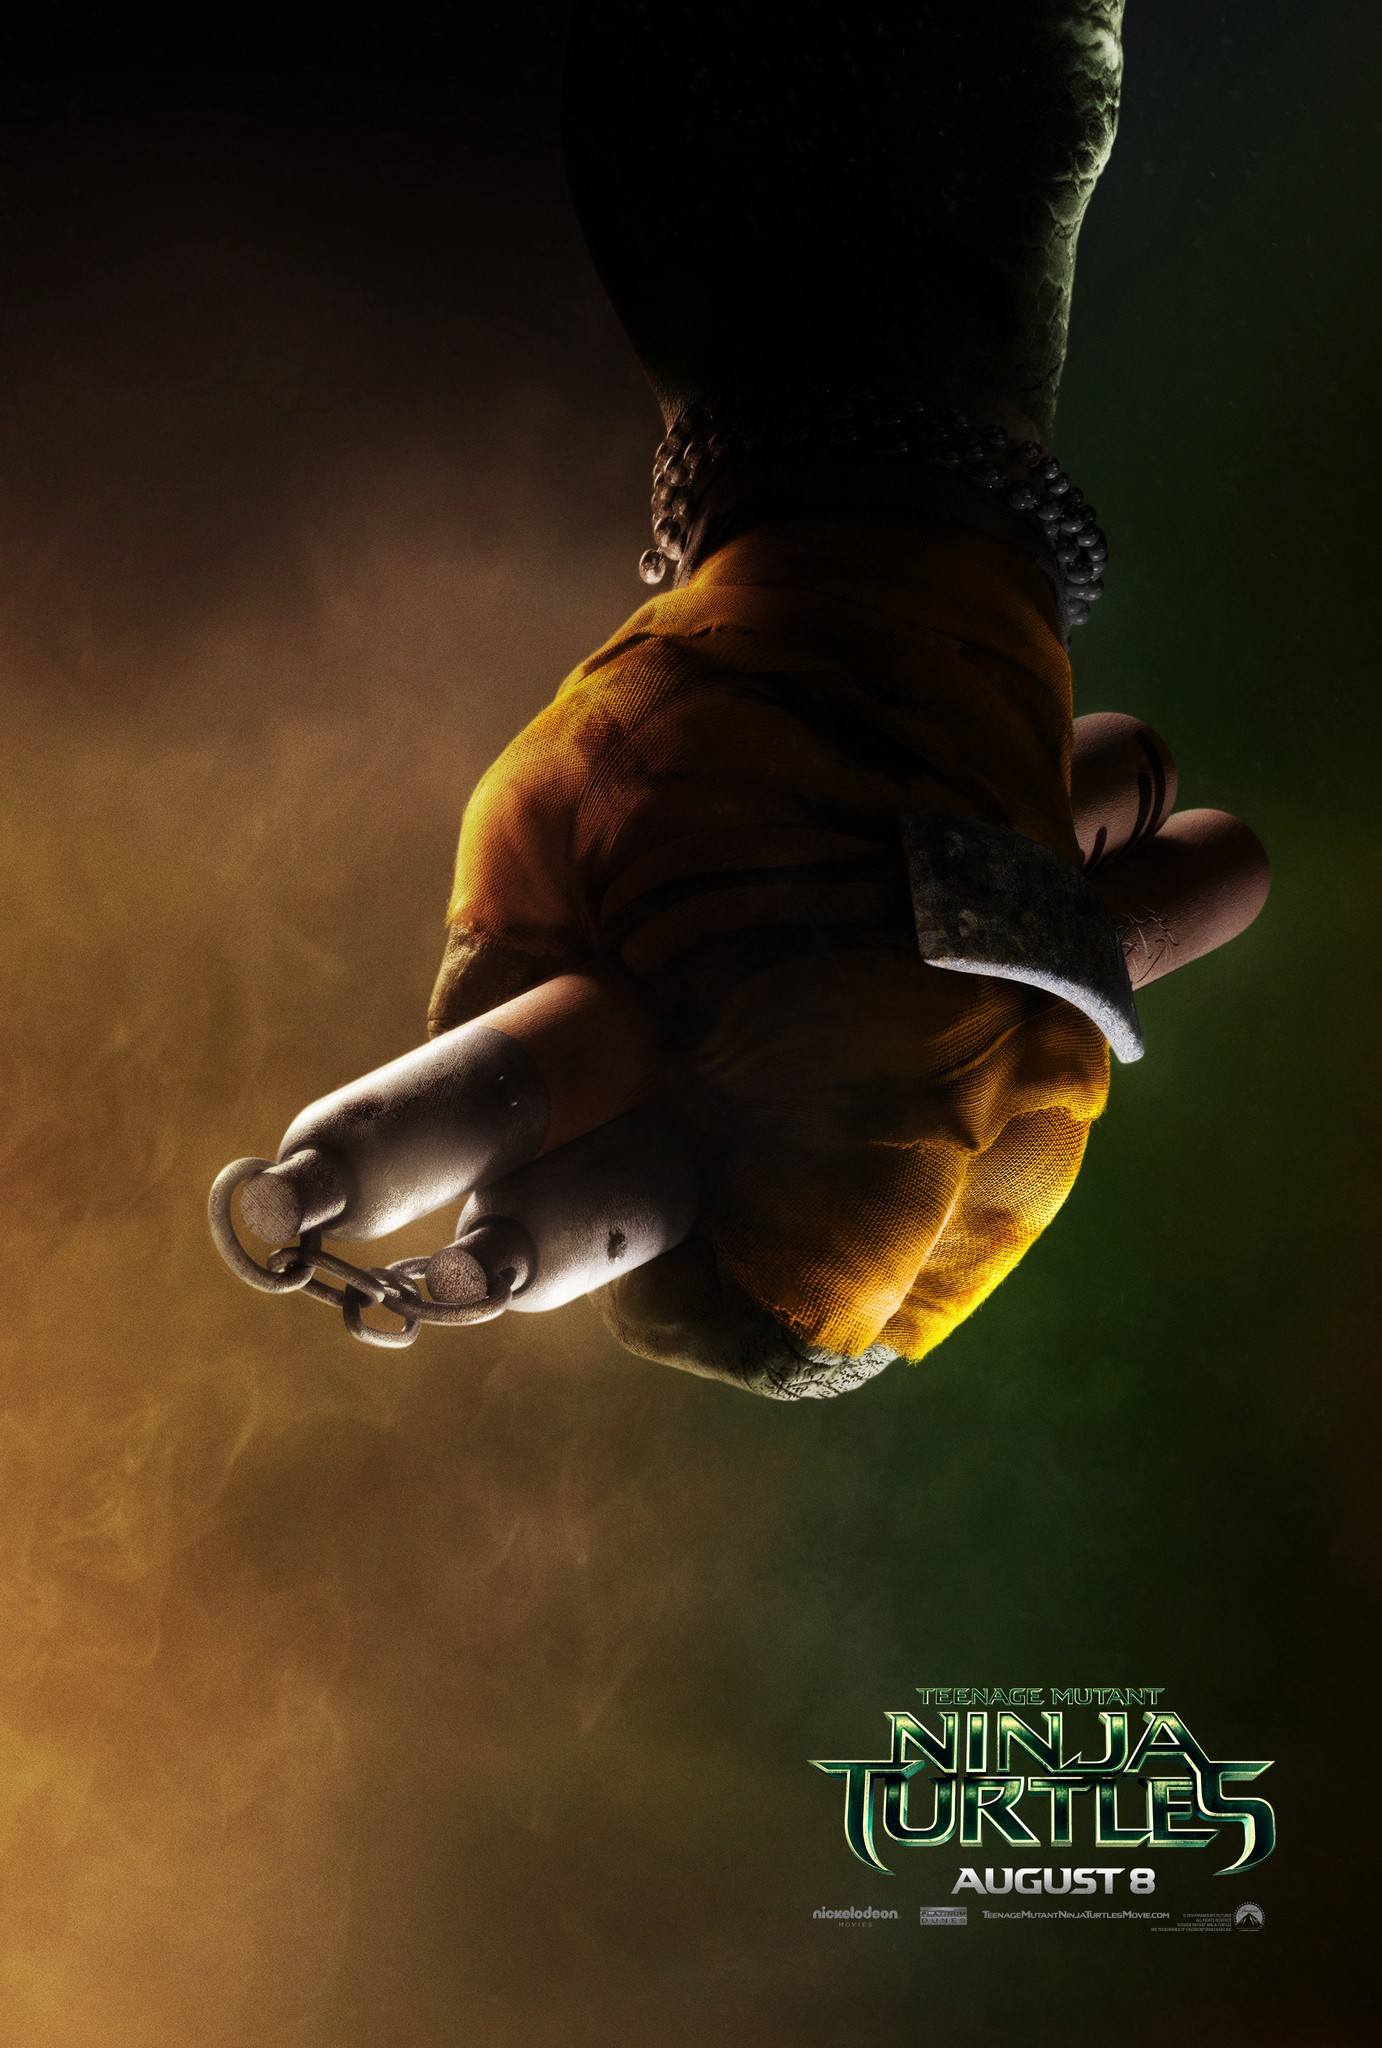 Teenage Mutant Ninja Turtles-Official Poster Banner PROMO XXLG-09ABRIL2014-02